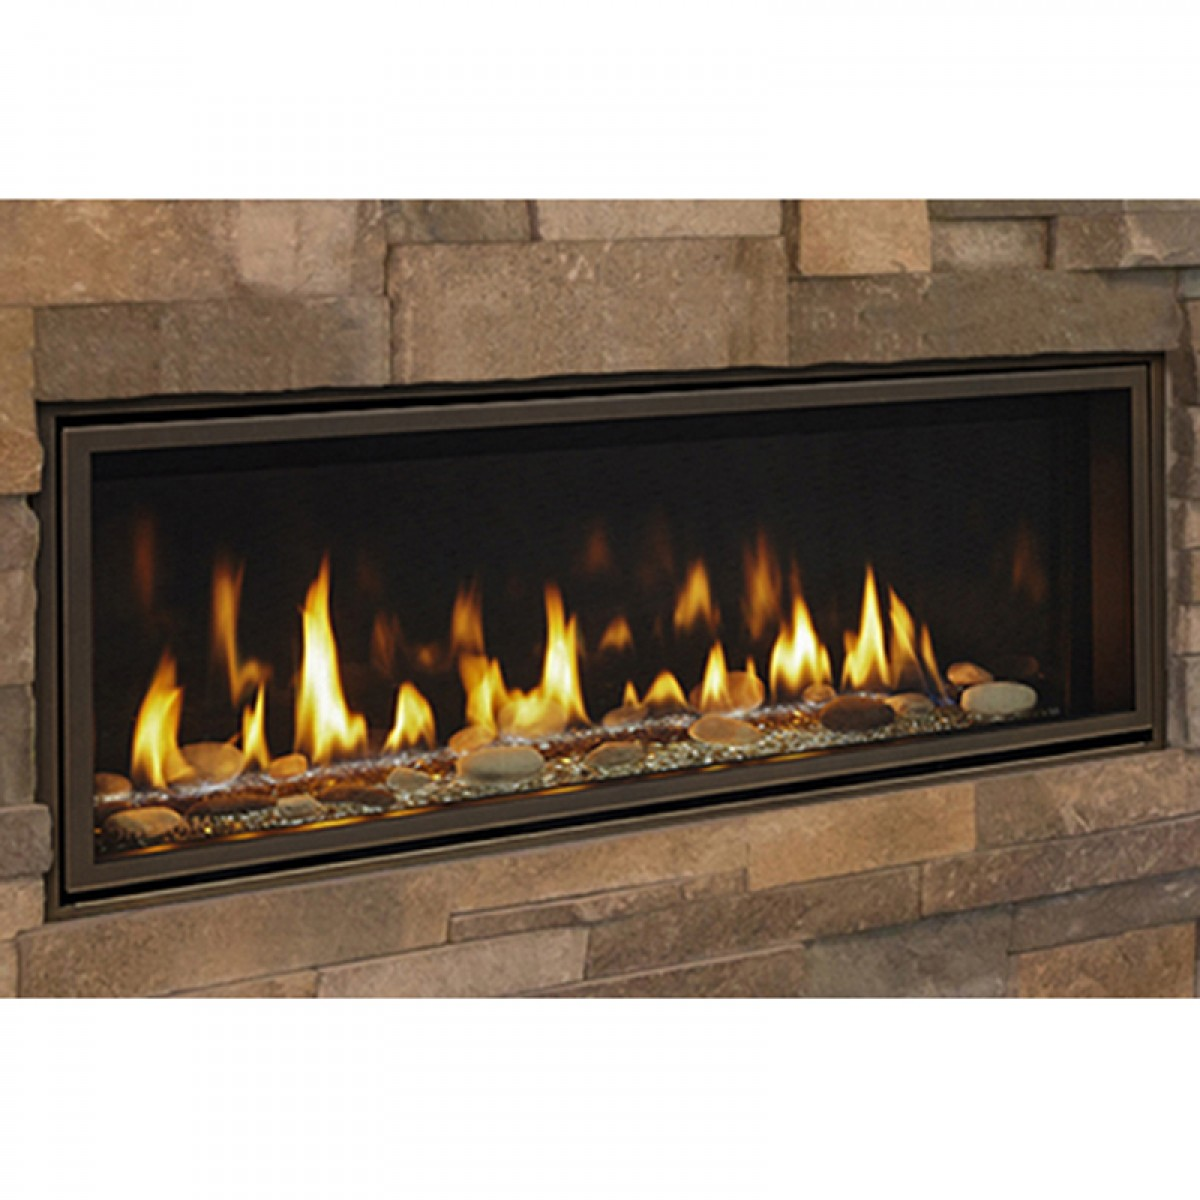 Majestic Echelon Ii 36 Ng Direct Vent Fireplace Echel36in